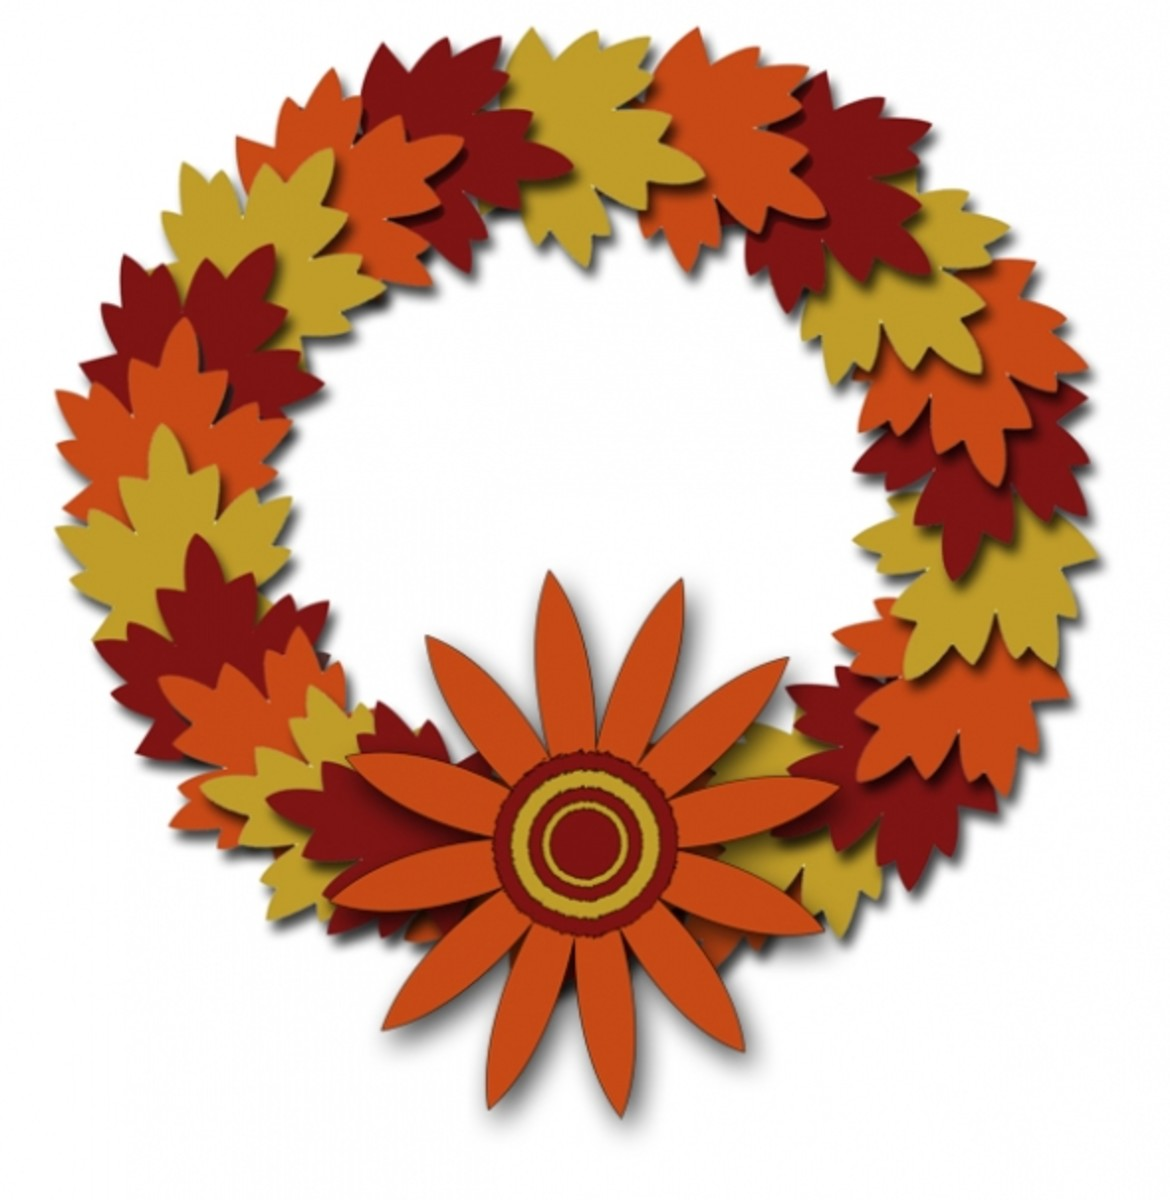 Harvest season wreath graphic.